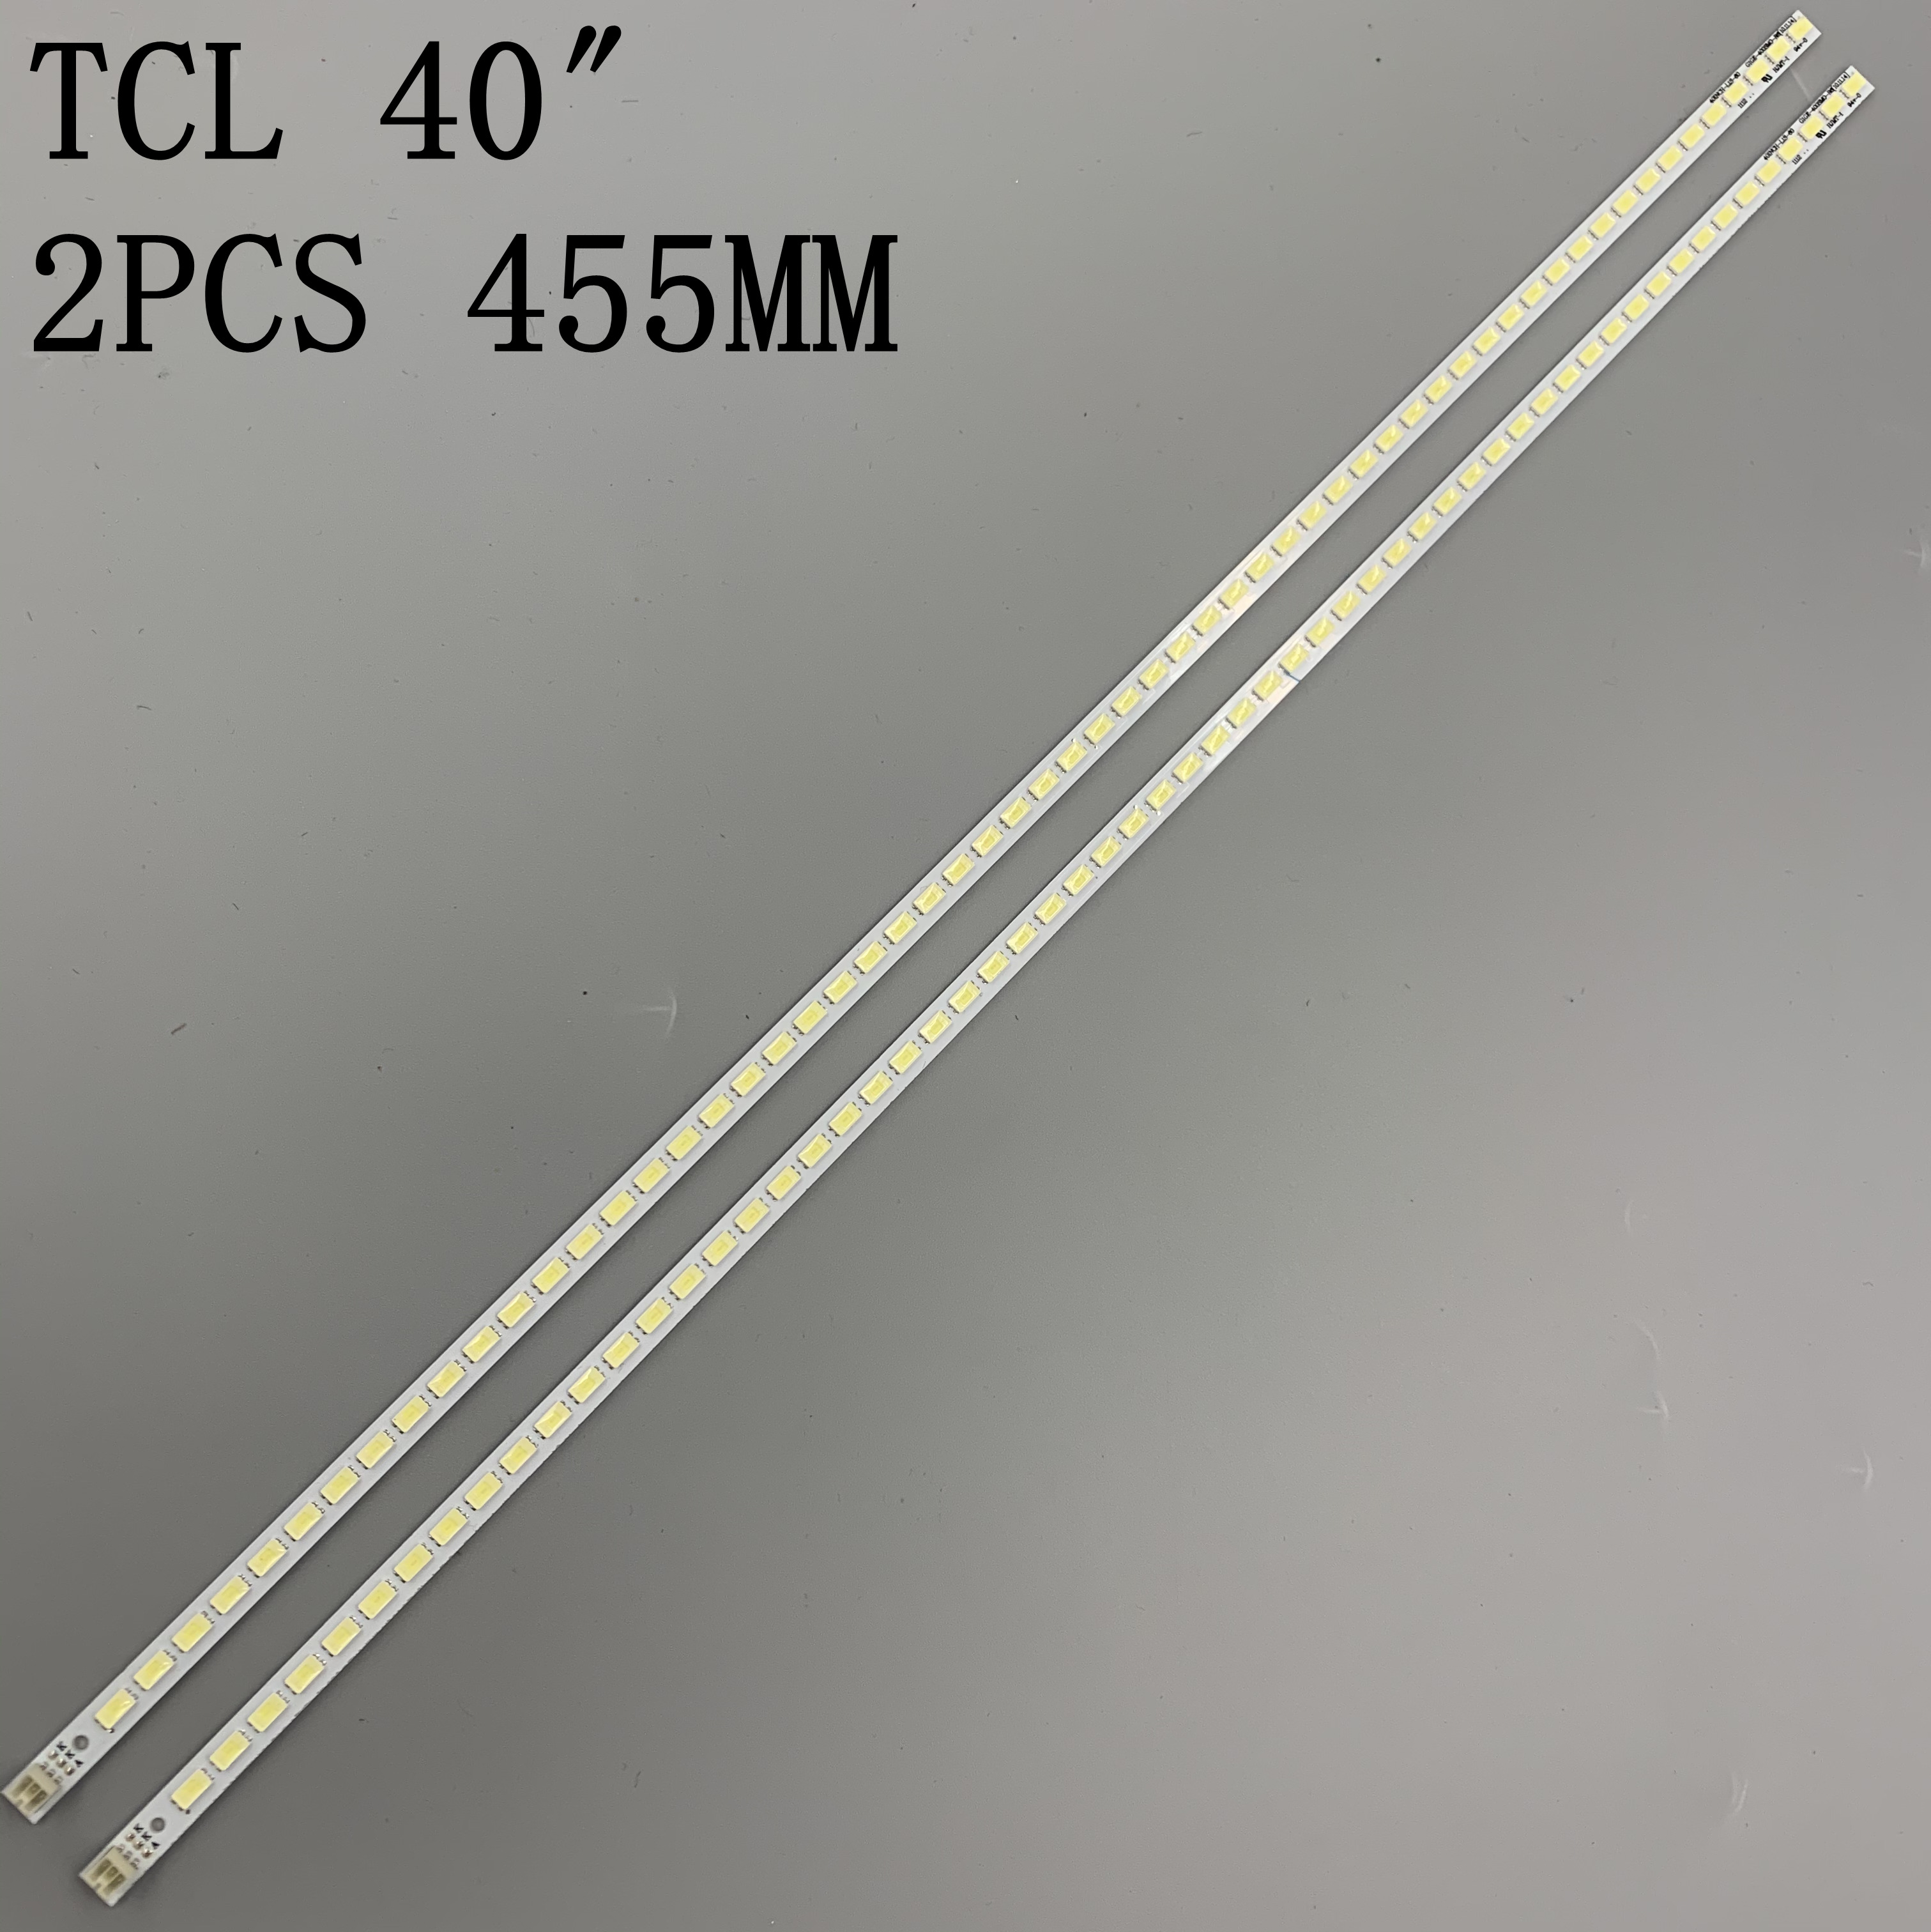 L40F3200B 40-DOWN LJ64-03029A LTA400HM13 SLED 2011SGS40 5630 60 H1 REV1.0_core 1PCS=60LED 455MM